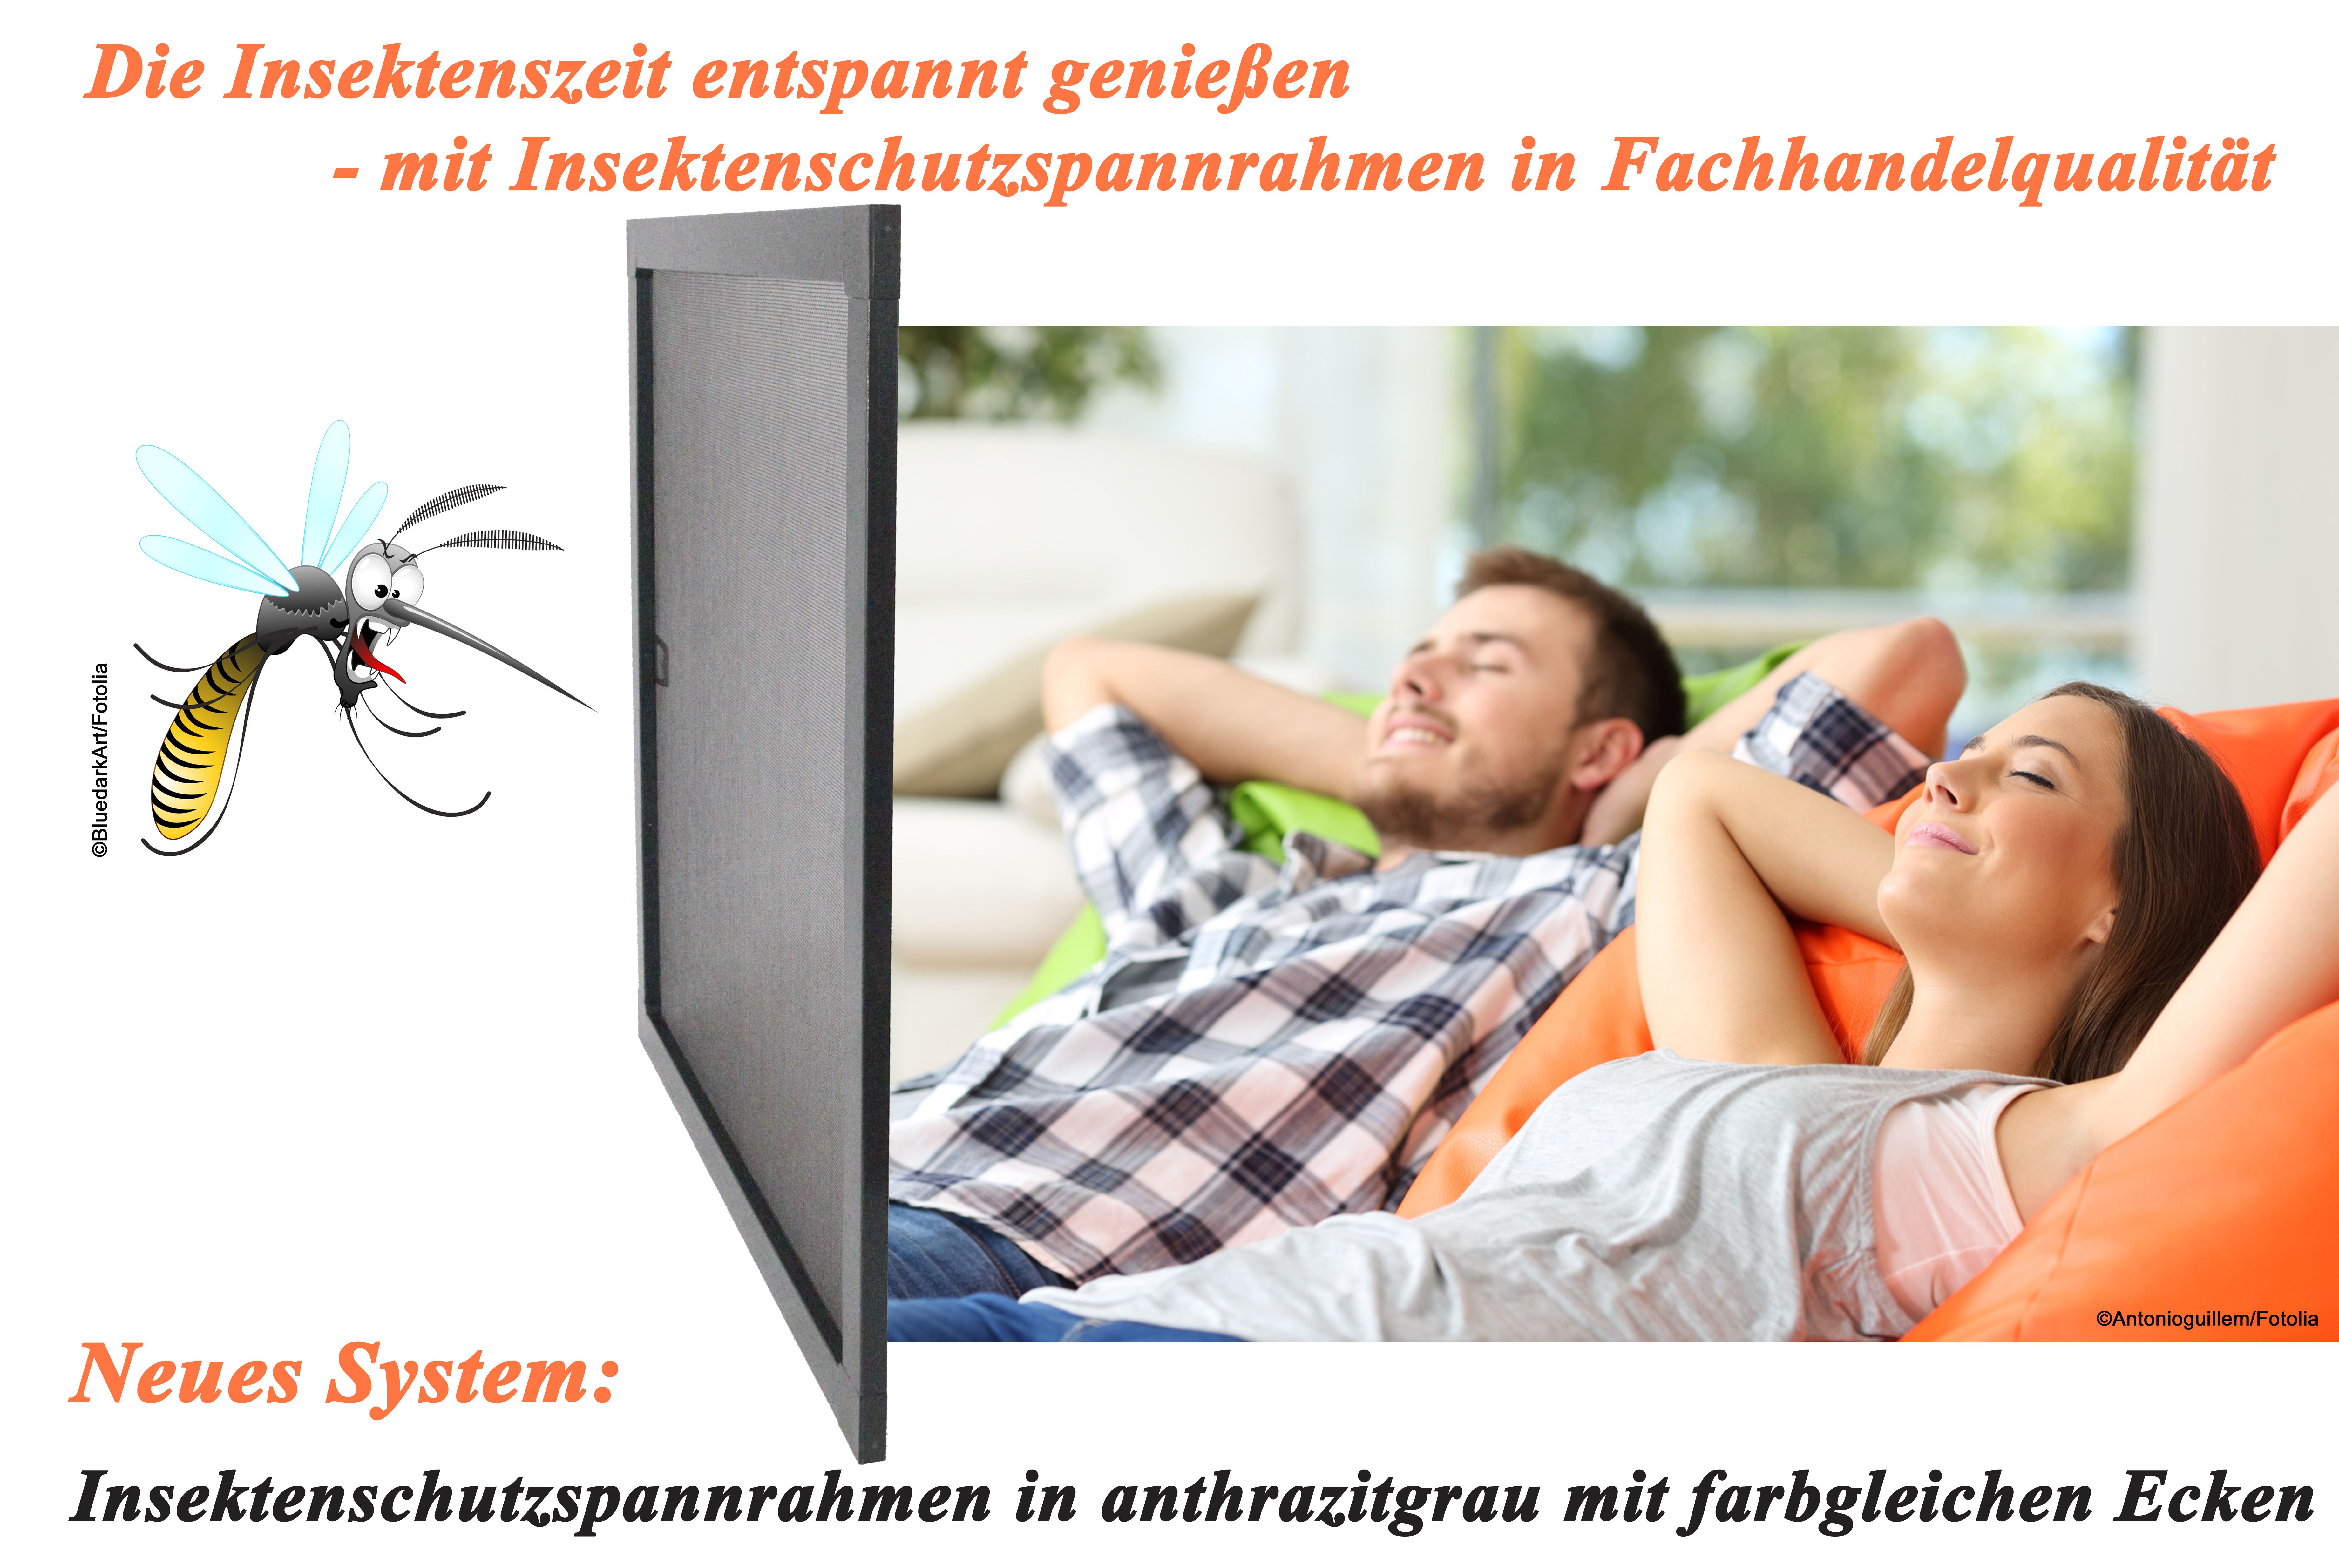 insektenschutz spannrahmen f r fenster teso insektenschutzsysteme. Black Bedroom Furniture Sets. Home Design Ideas